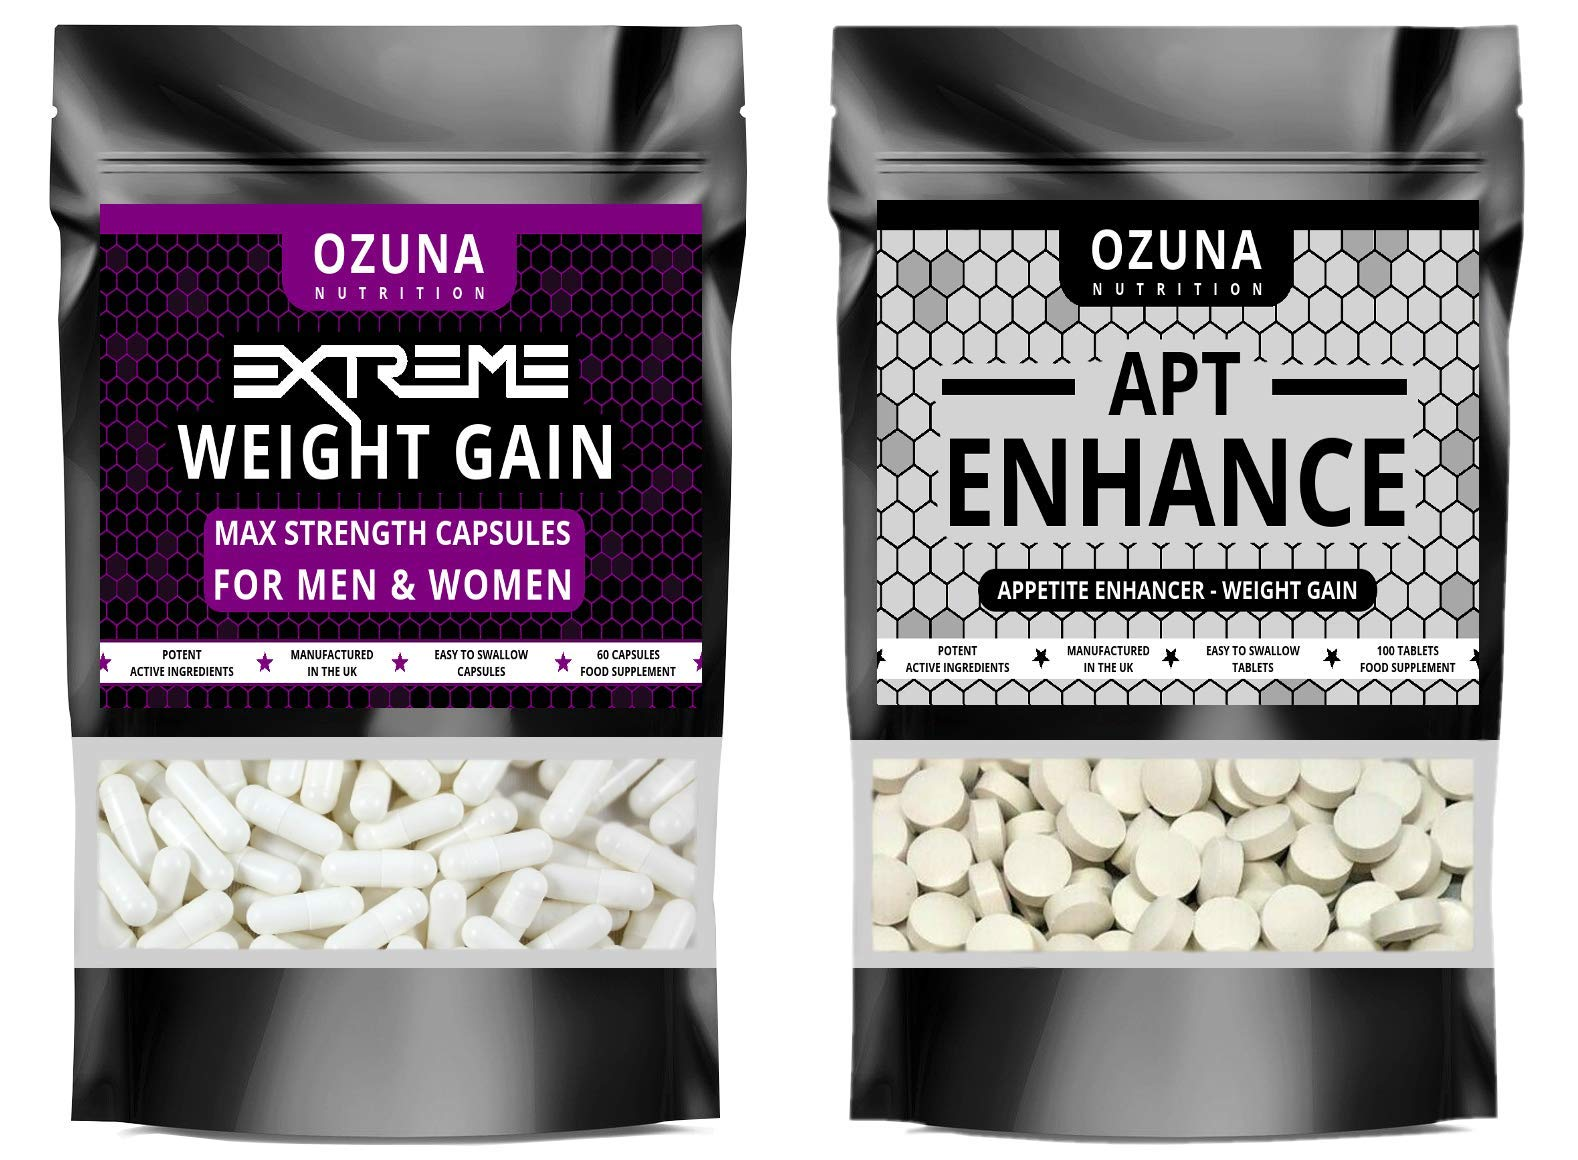 Extreme Weight Gain Anabolic & APT Appetite Enhancer Stimulant Bundle Strongest Available, Quick Weight & Muscle Growth Pills, Made in The UK